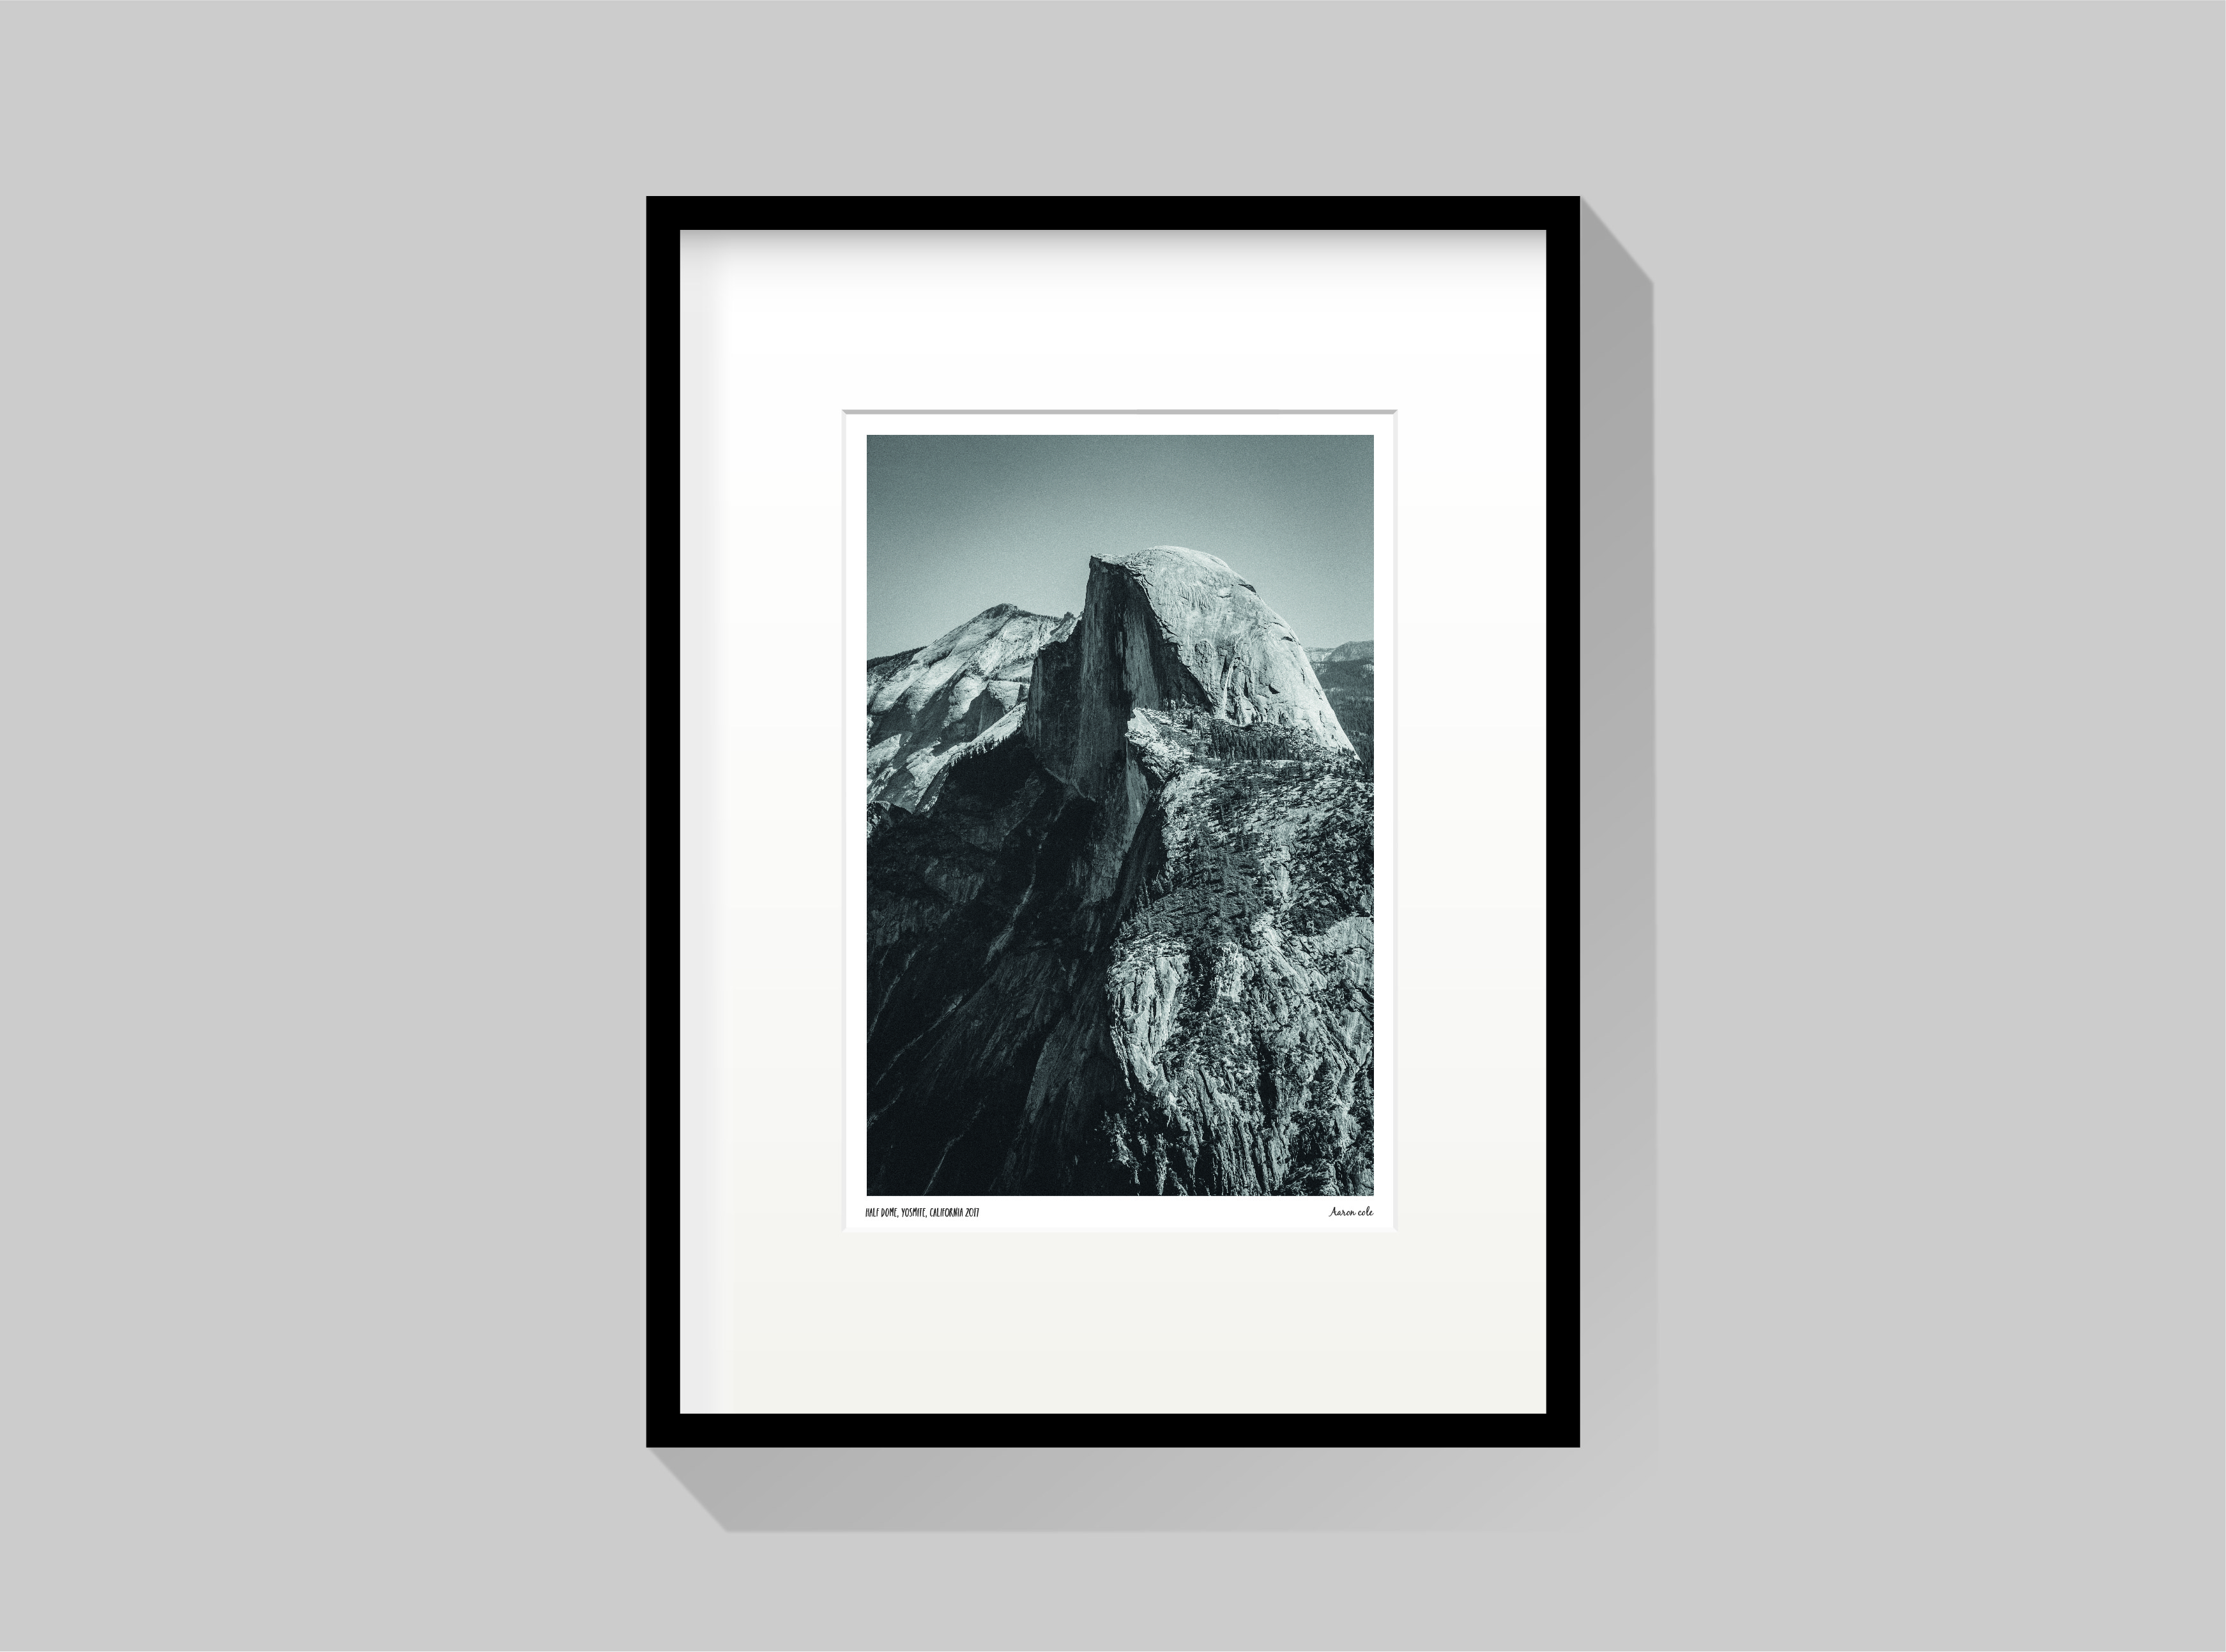 Framed signed photography artwork